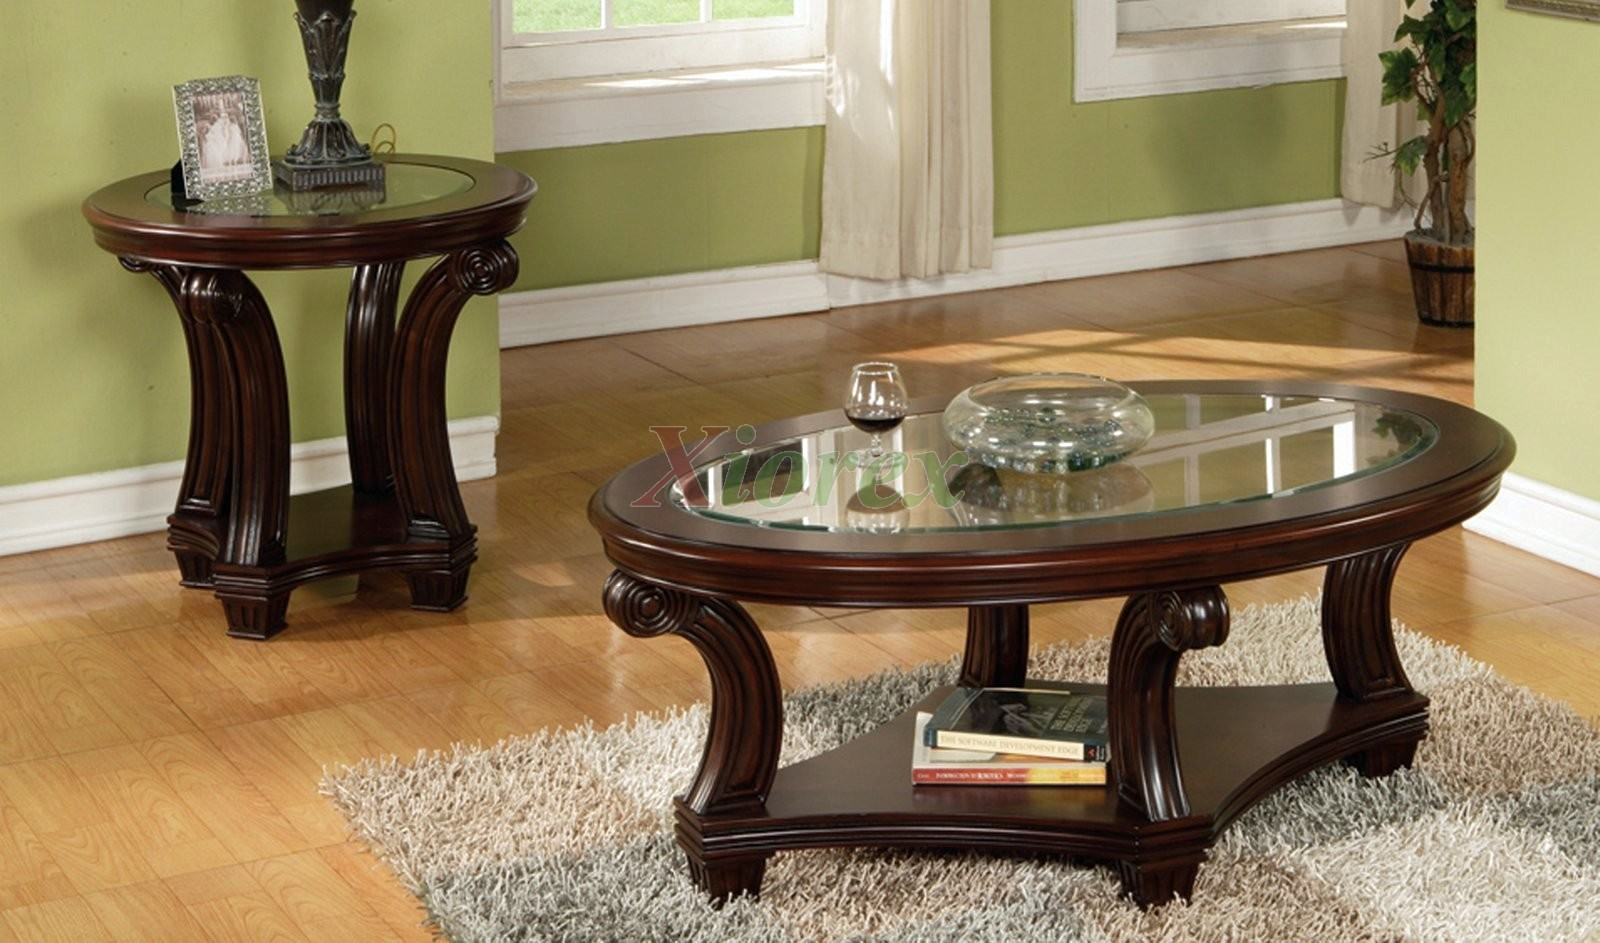 Modern Coffee Tables End Tables Perseus Glass Top Wooden Modern Minimalist Industrial Style Rustic Wood Furniture (Image 5 of 10)